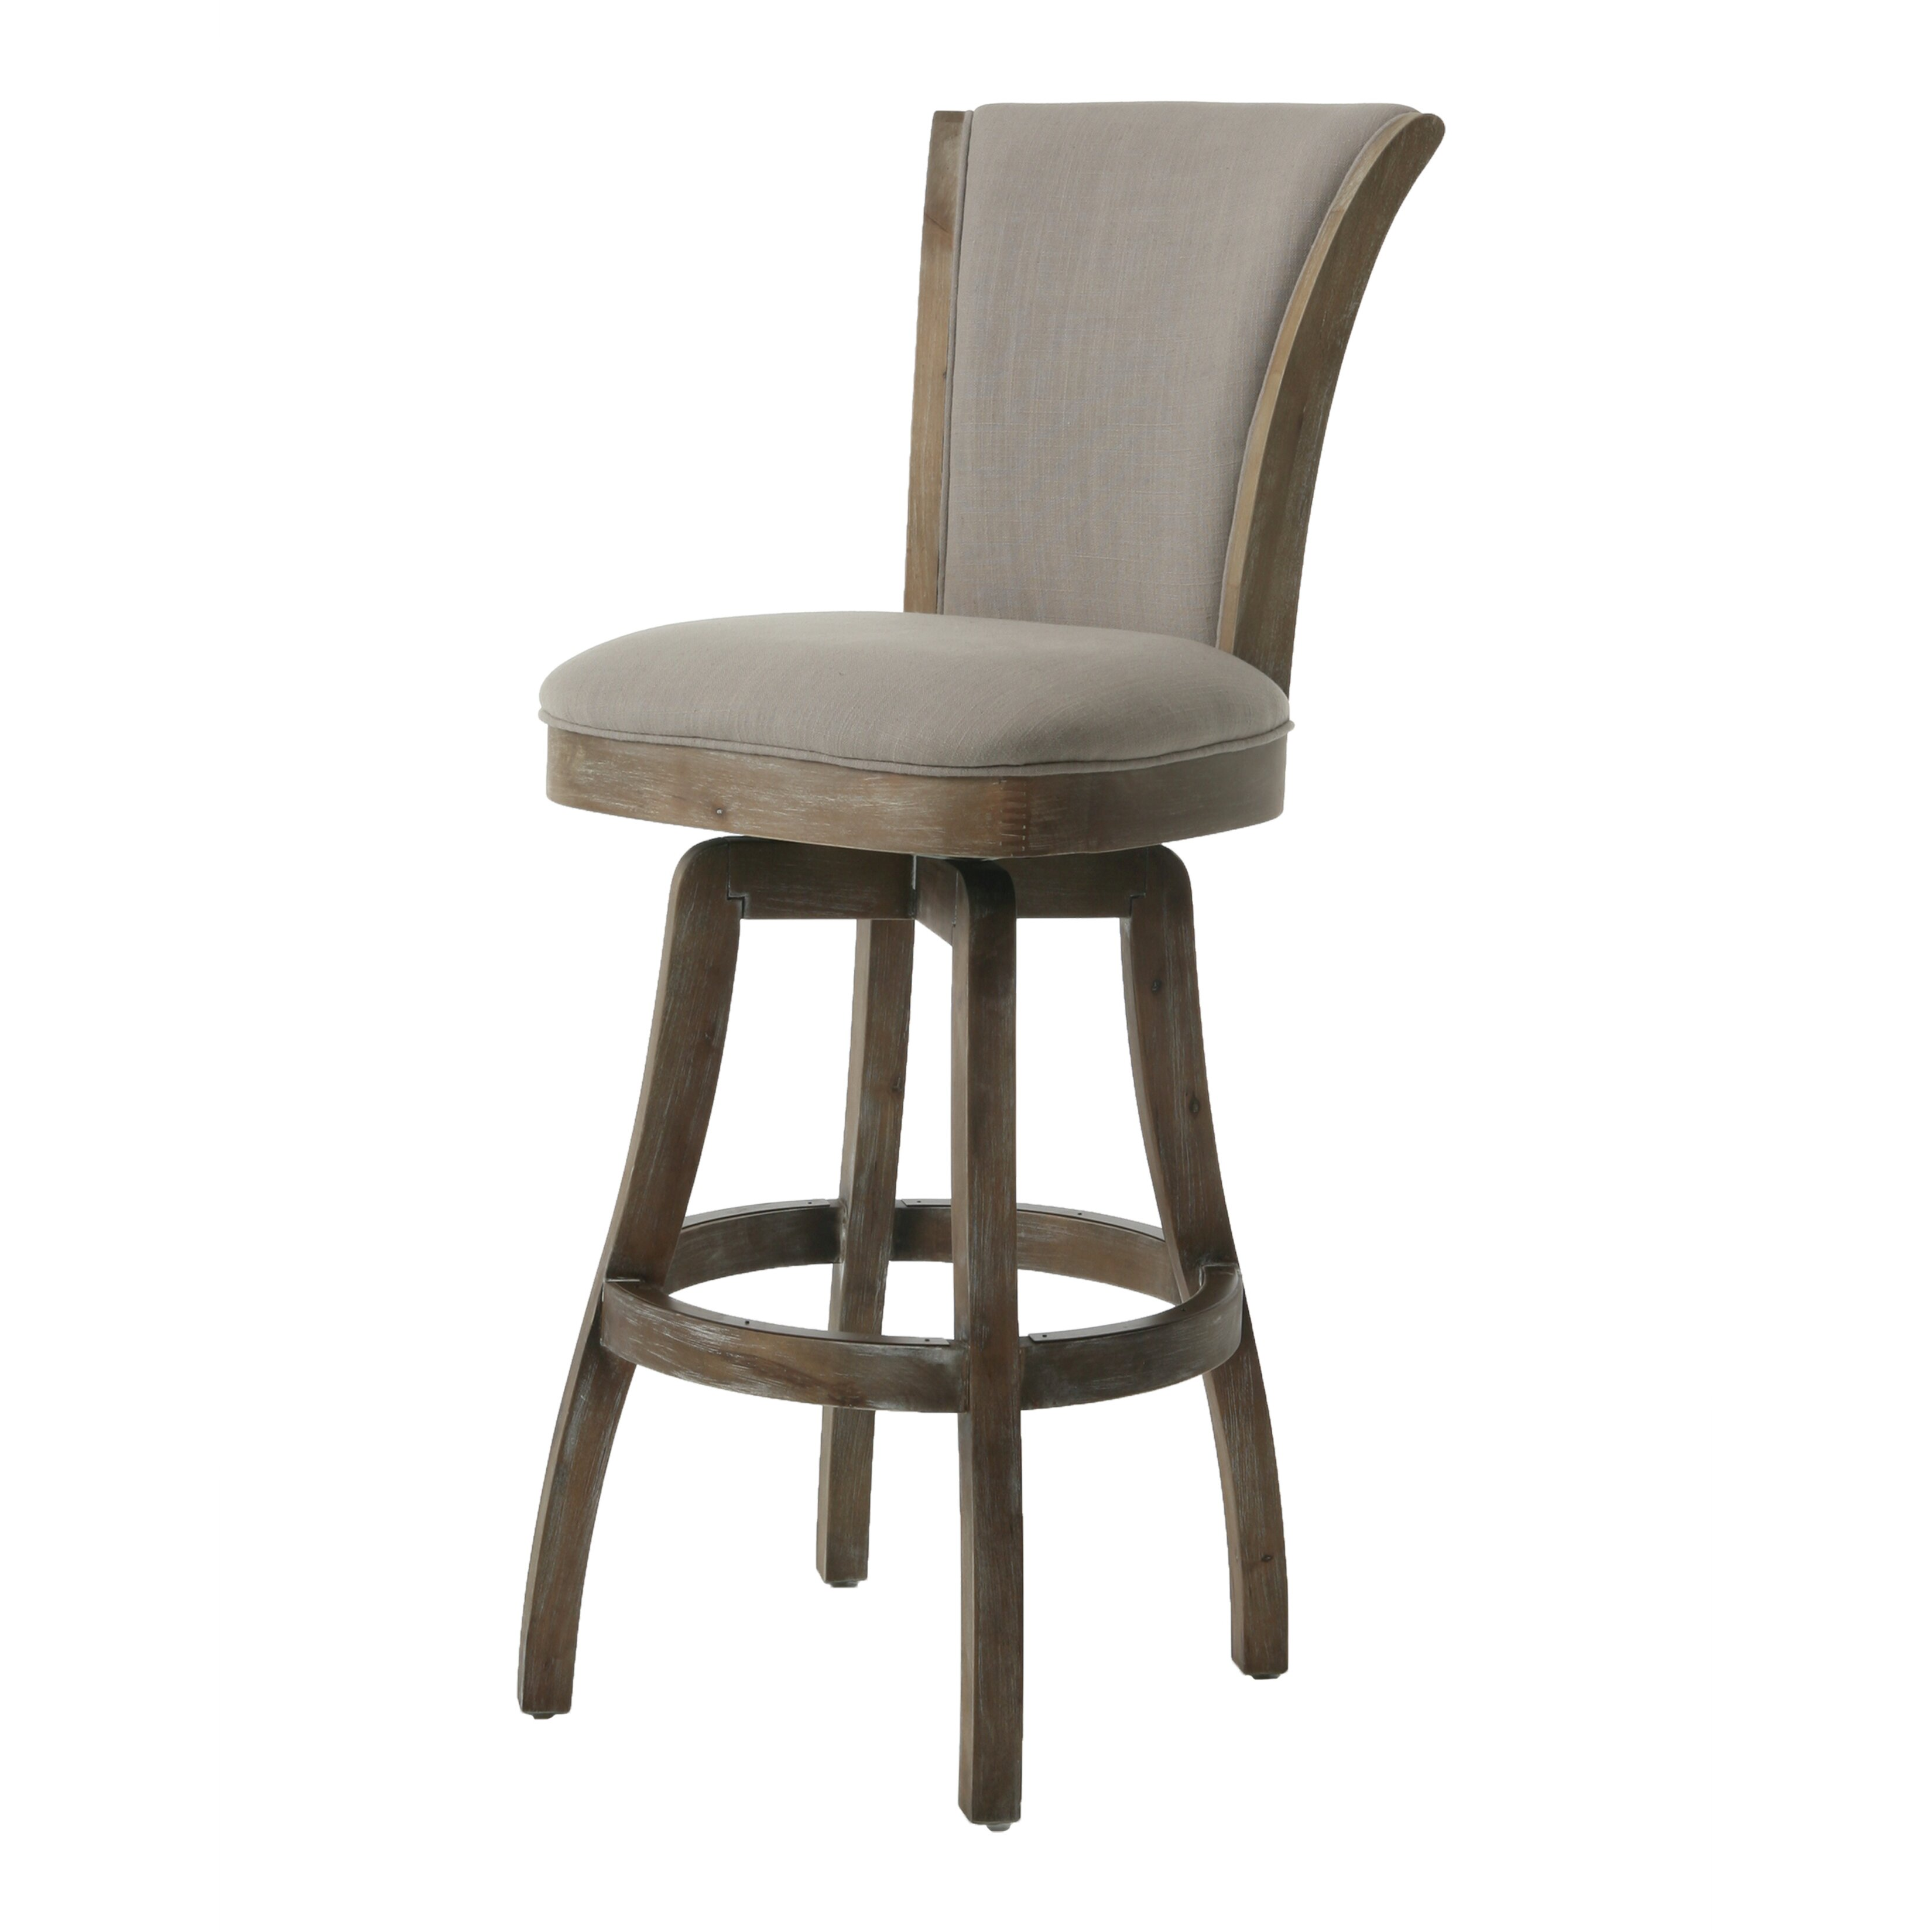 Outdoor Patio Bar Stool Covers